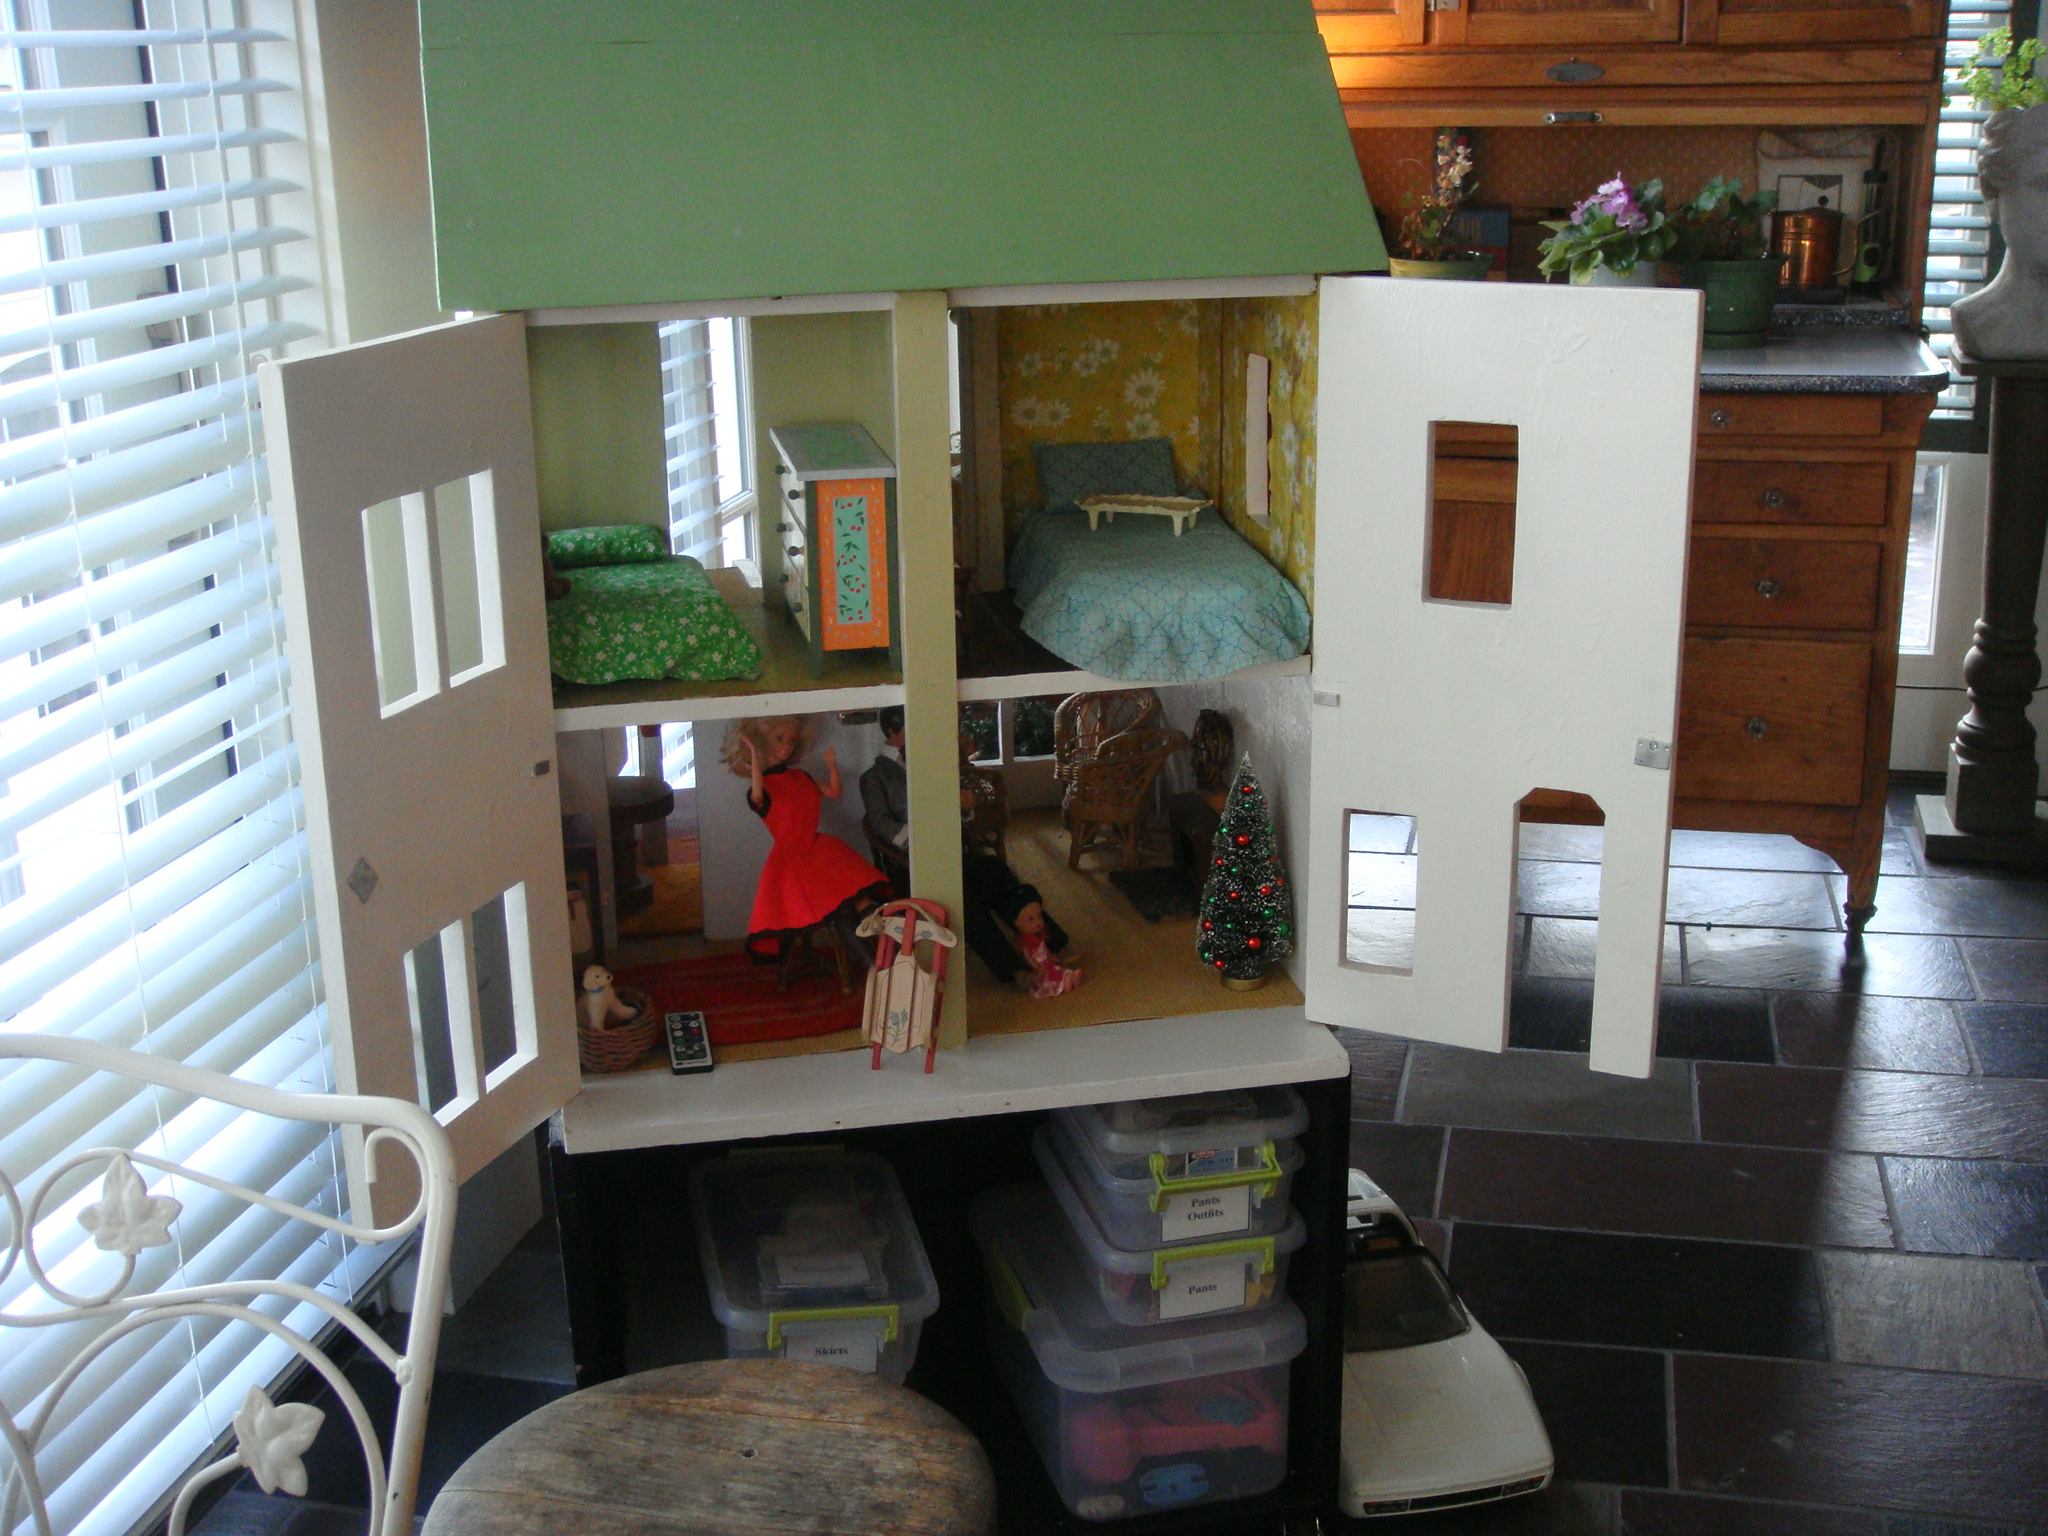 Dollhouse in the Buher's home